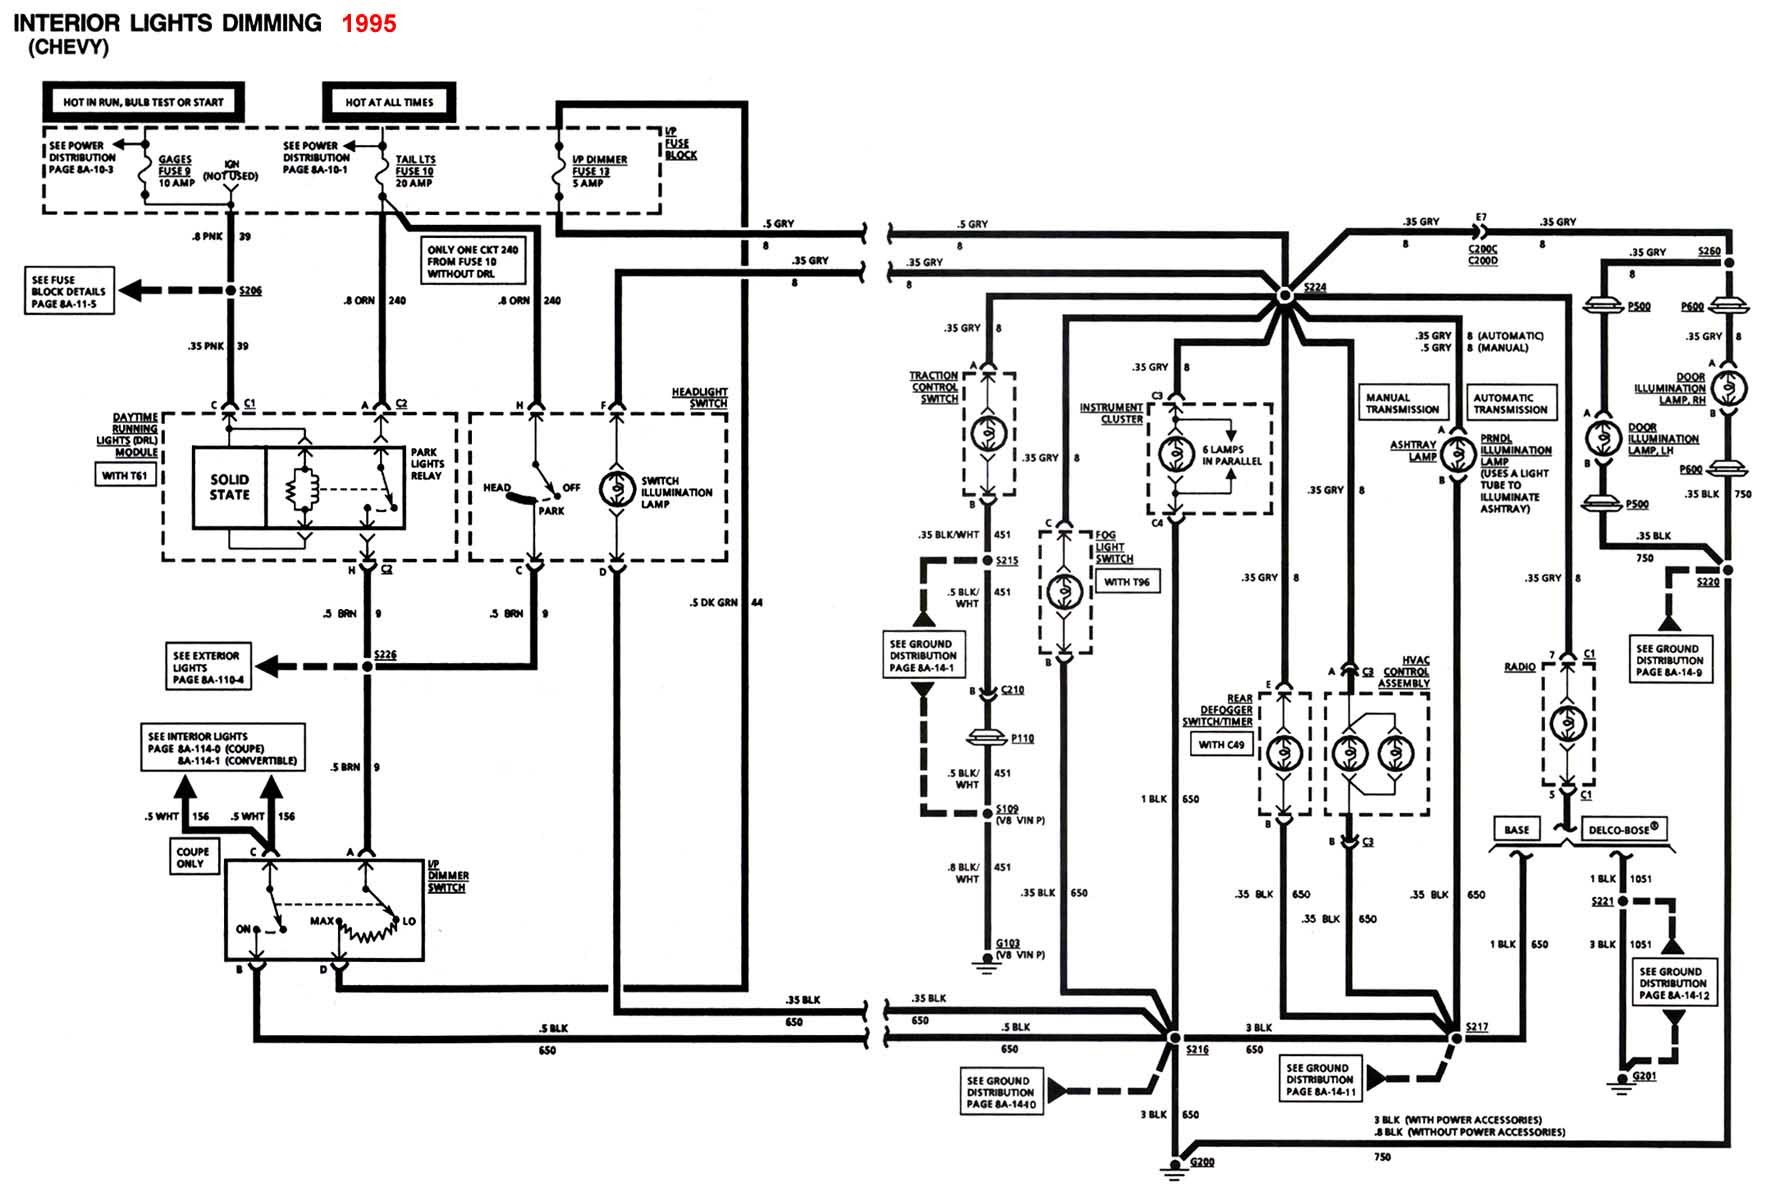 1967 Chevrolet Camaro Engine Compartment Wiring Diagram from detoxicrecenze.com